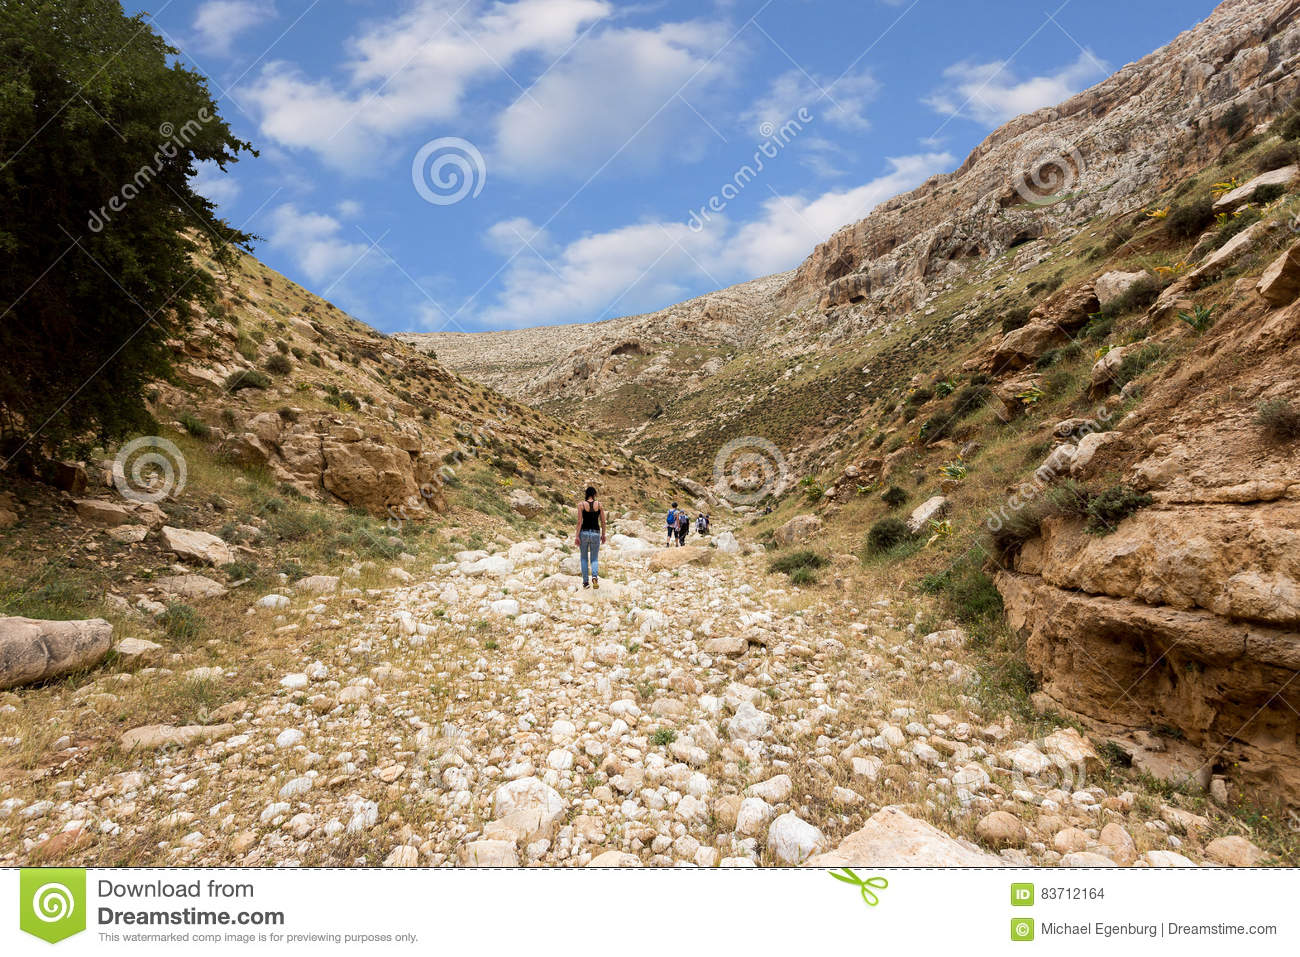 ISRAEL, NEGEV DESERT - APRIL 07, 2016: People Go Through Rocky Desert. ISRAEL, NEGEV DESERT Editorial Stock Image